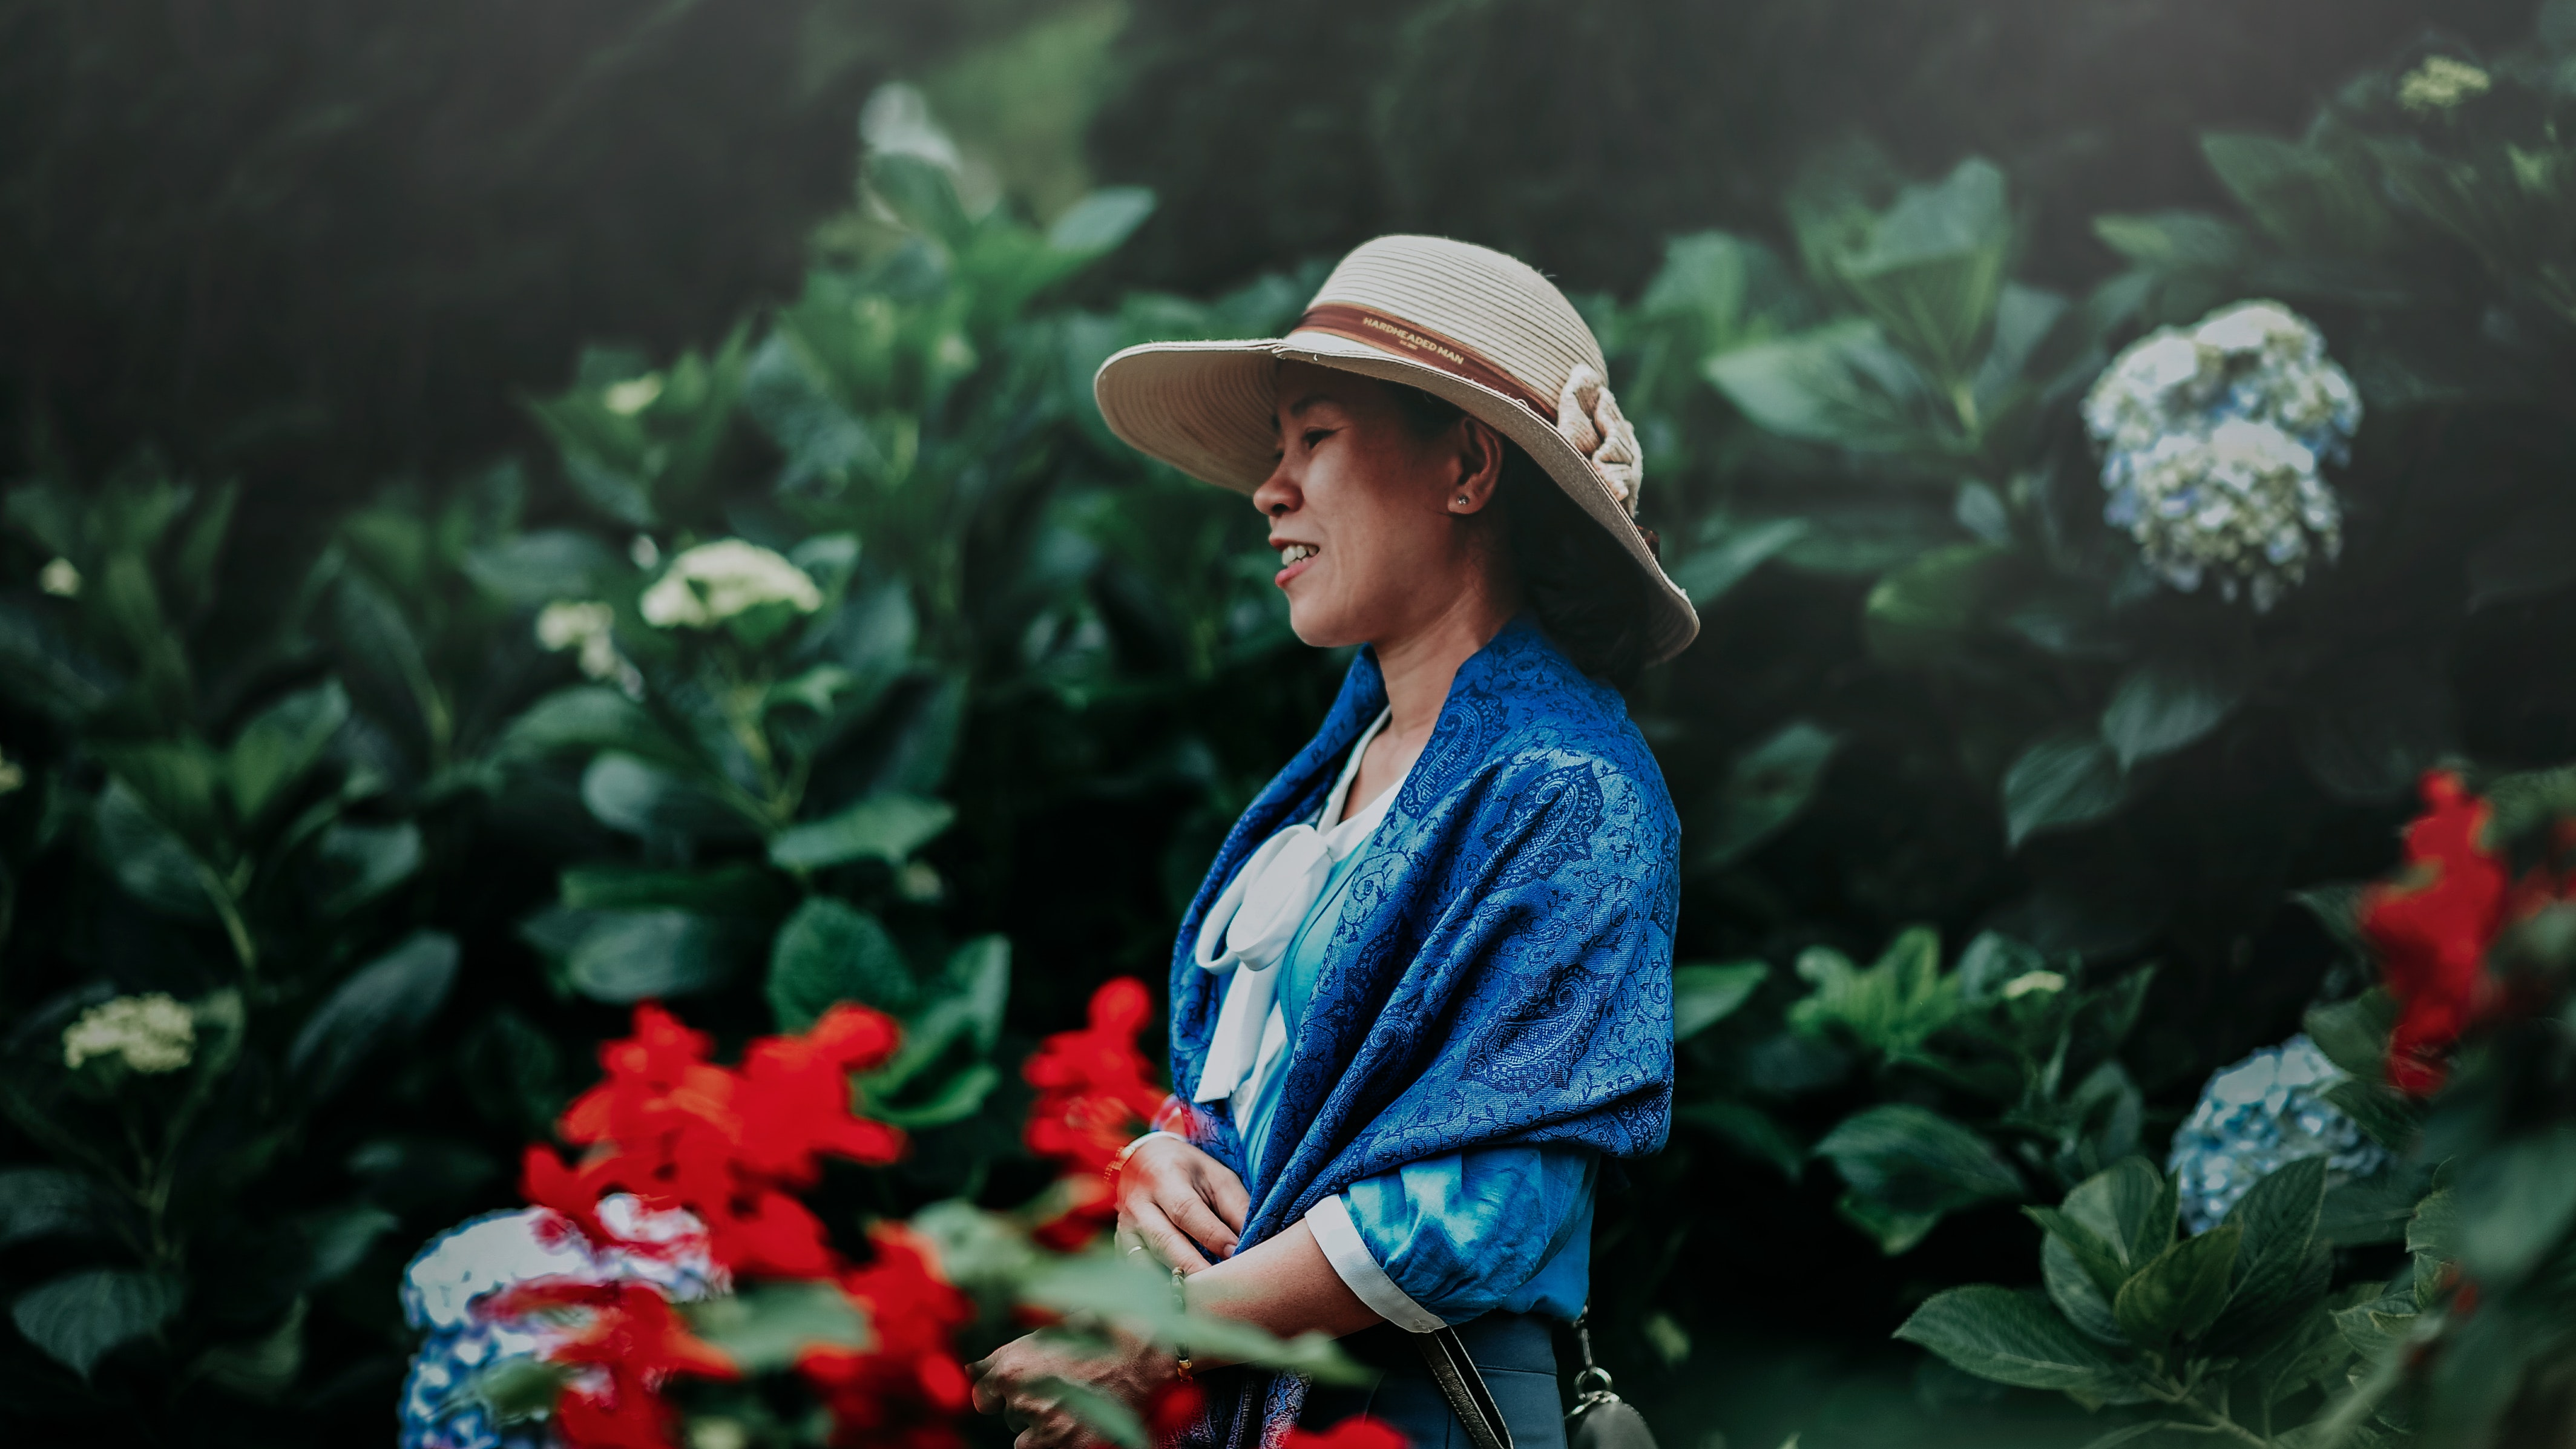 Selective Focus Photo of Woman in Blue Shawl and Brown Sun Hat in the Middle of Garden, Colors, Face, Flowers, Garden, HQ Photo